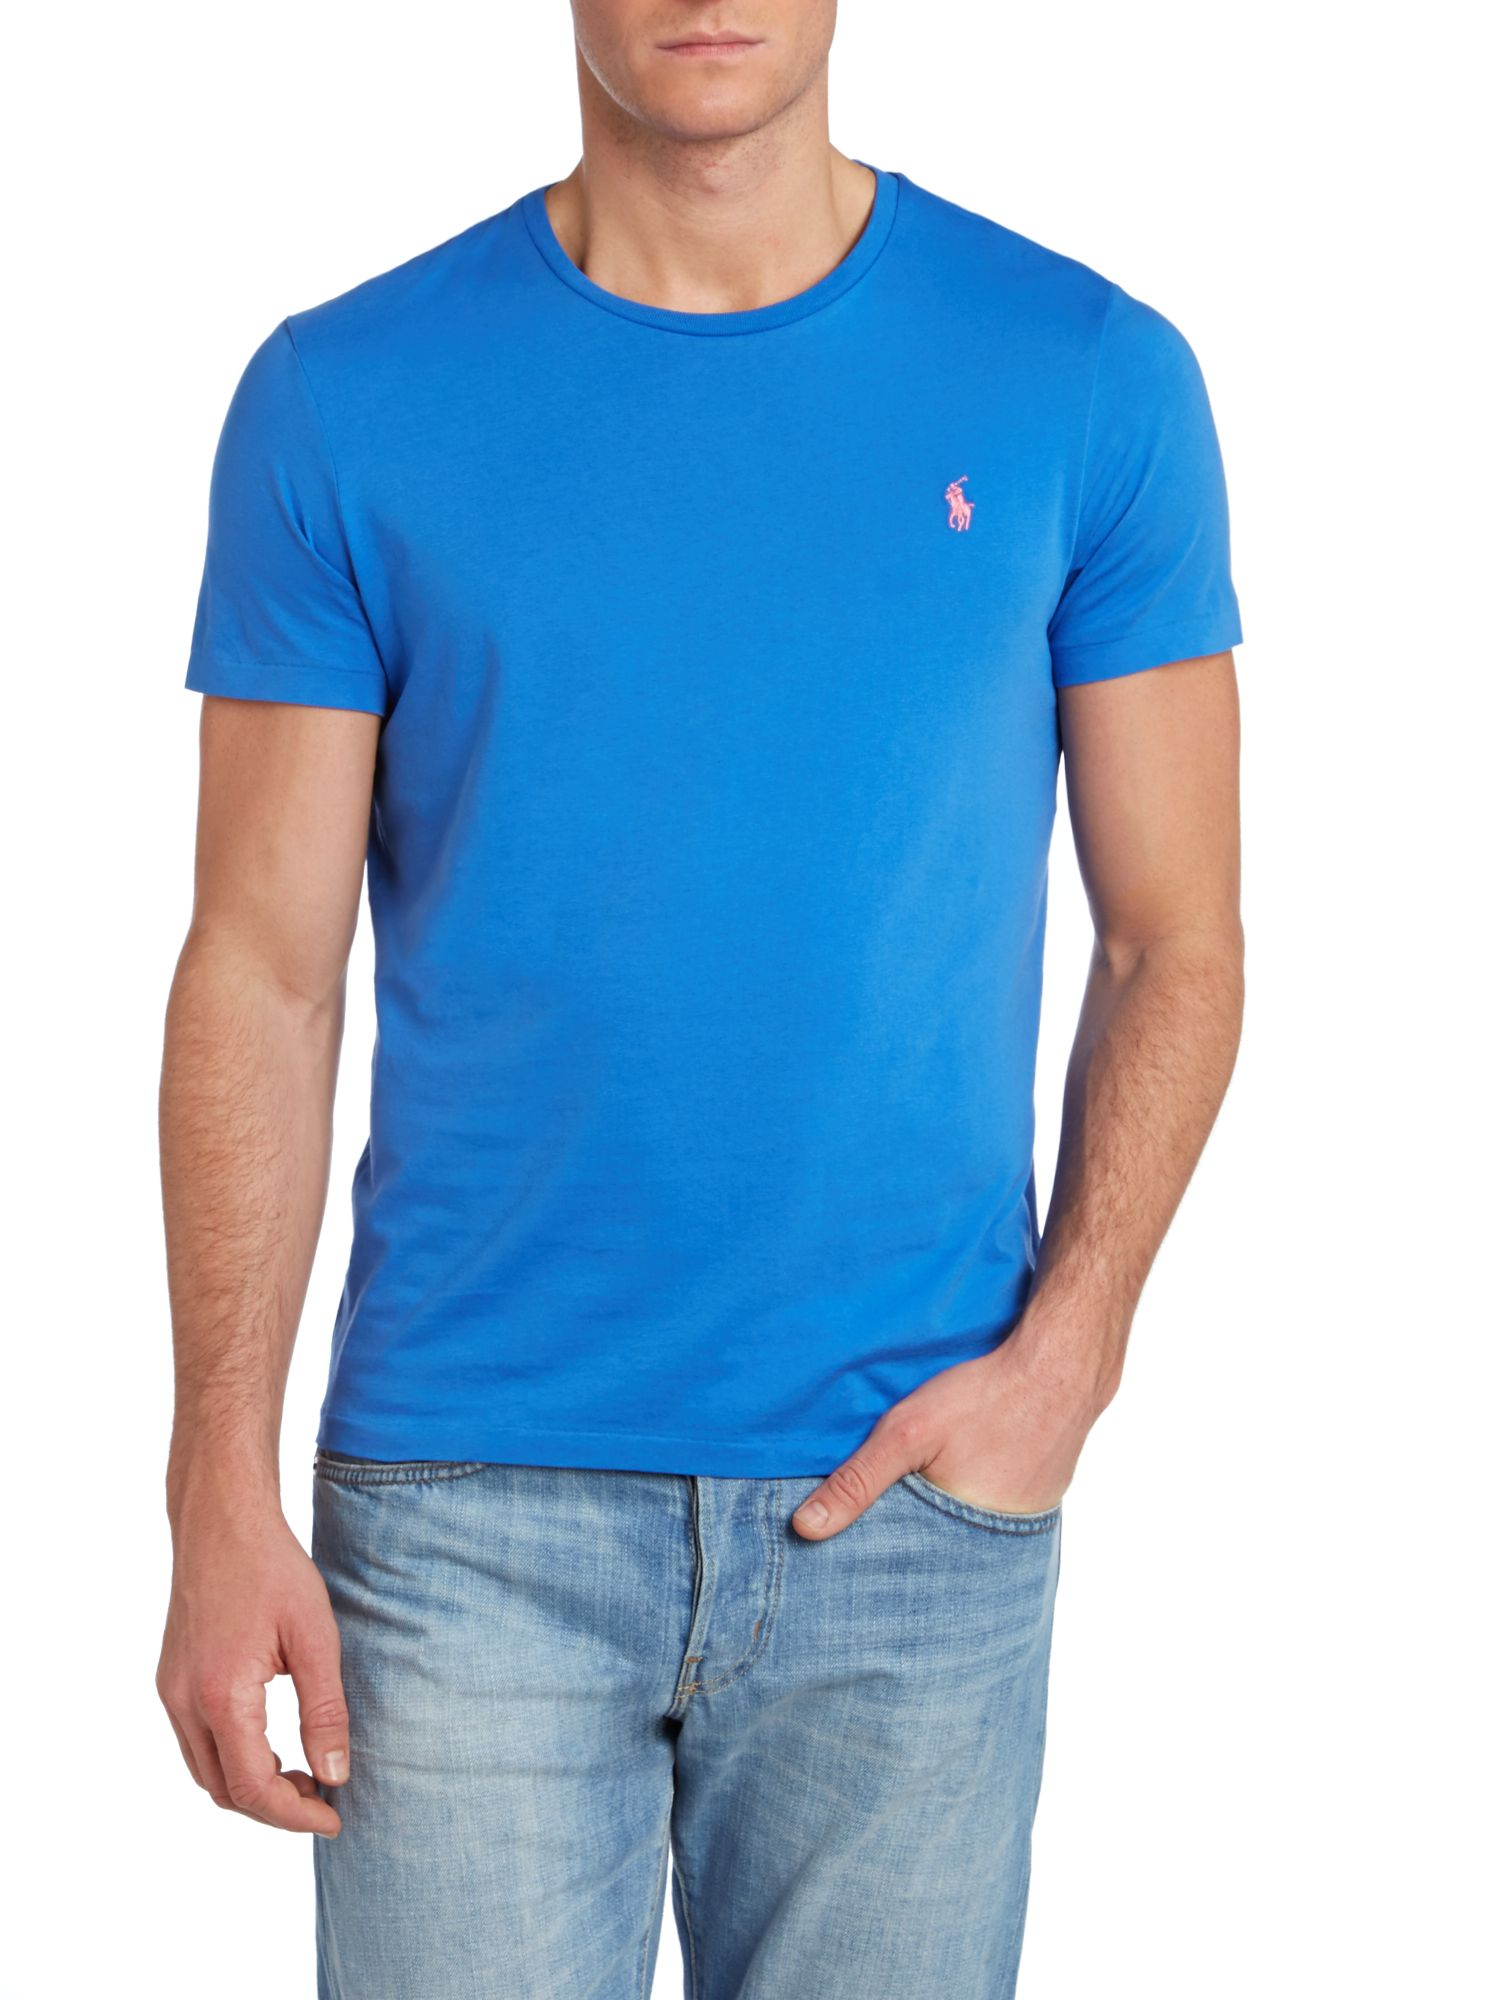 Lyst polo ralph lauren custom fit crew neck short sleeve for Custom fit t shirts